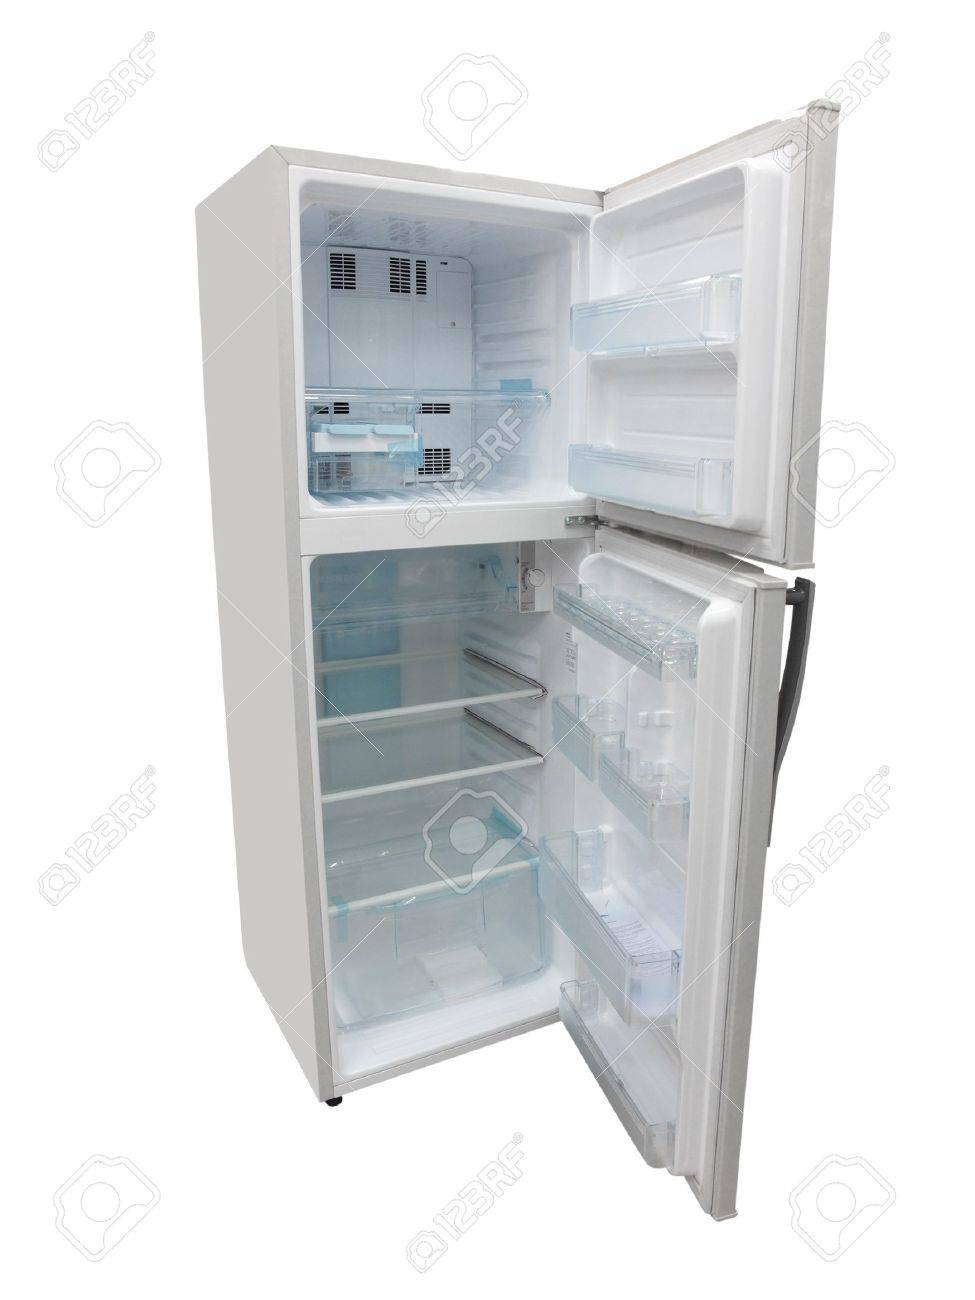 The image of an open refrigerator under the white background Stock Photo - 6161296